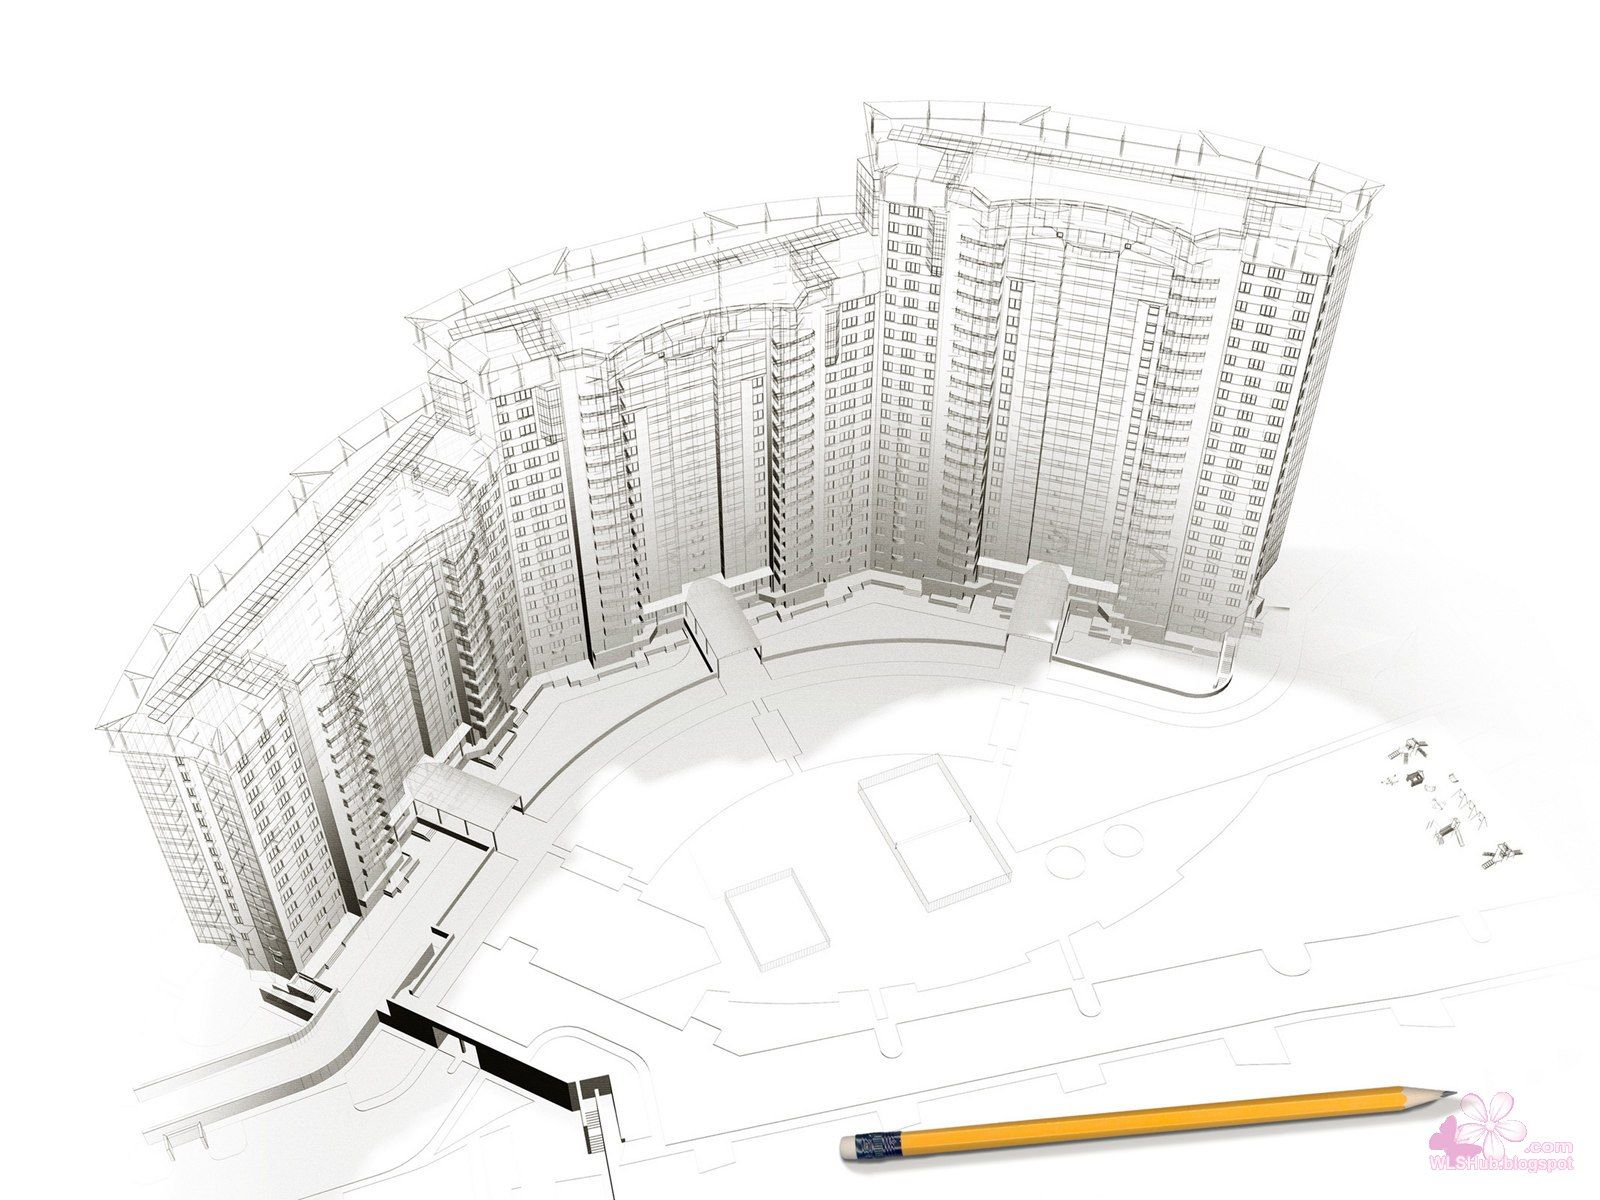 Architectural Design Drawing Inspiration 2jpg 1600